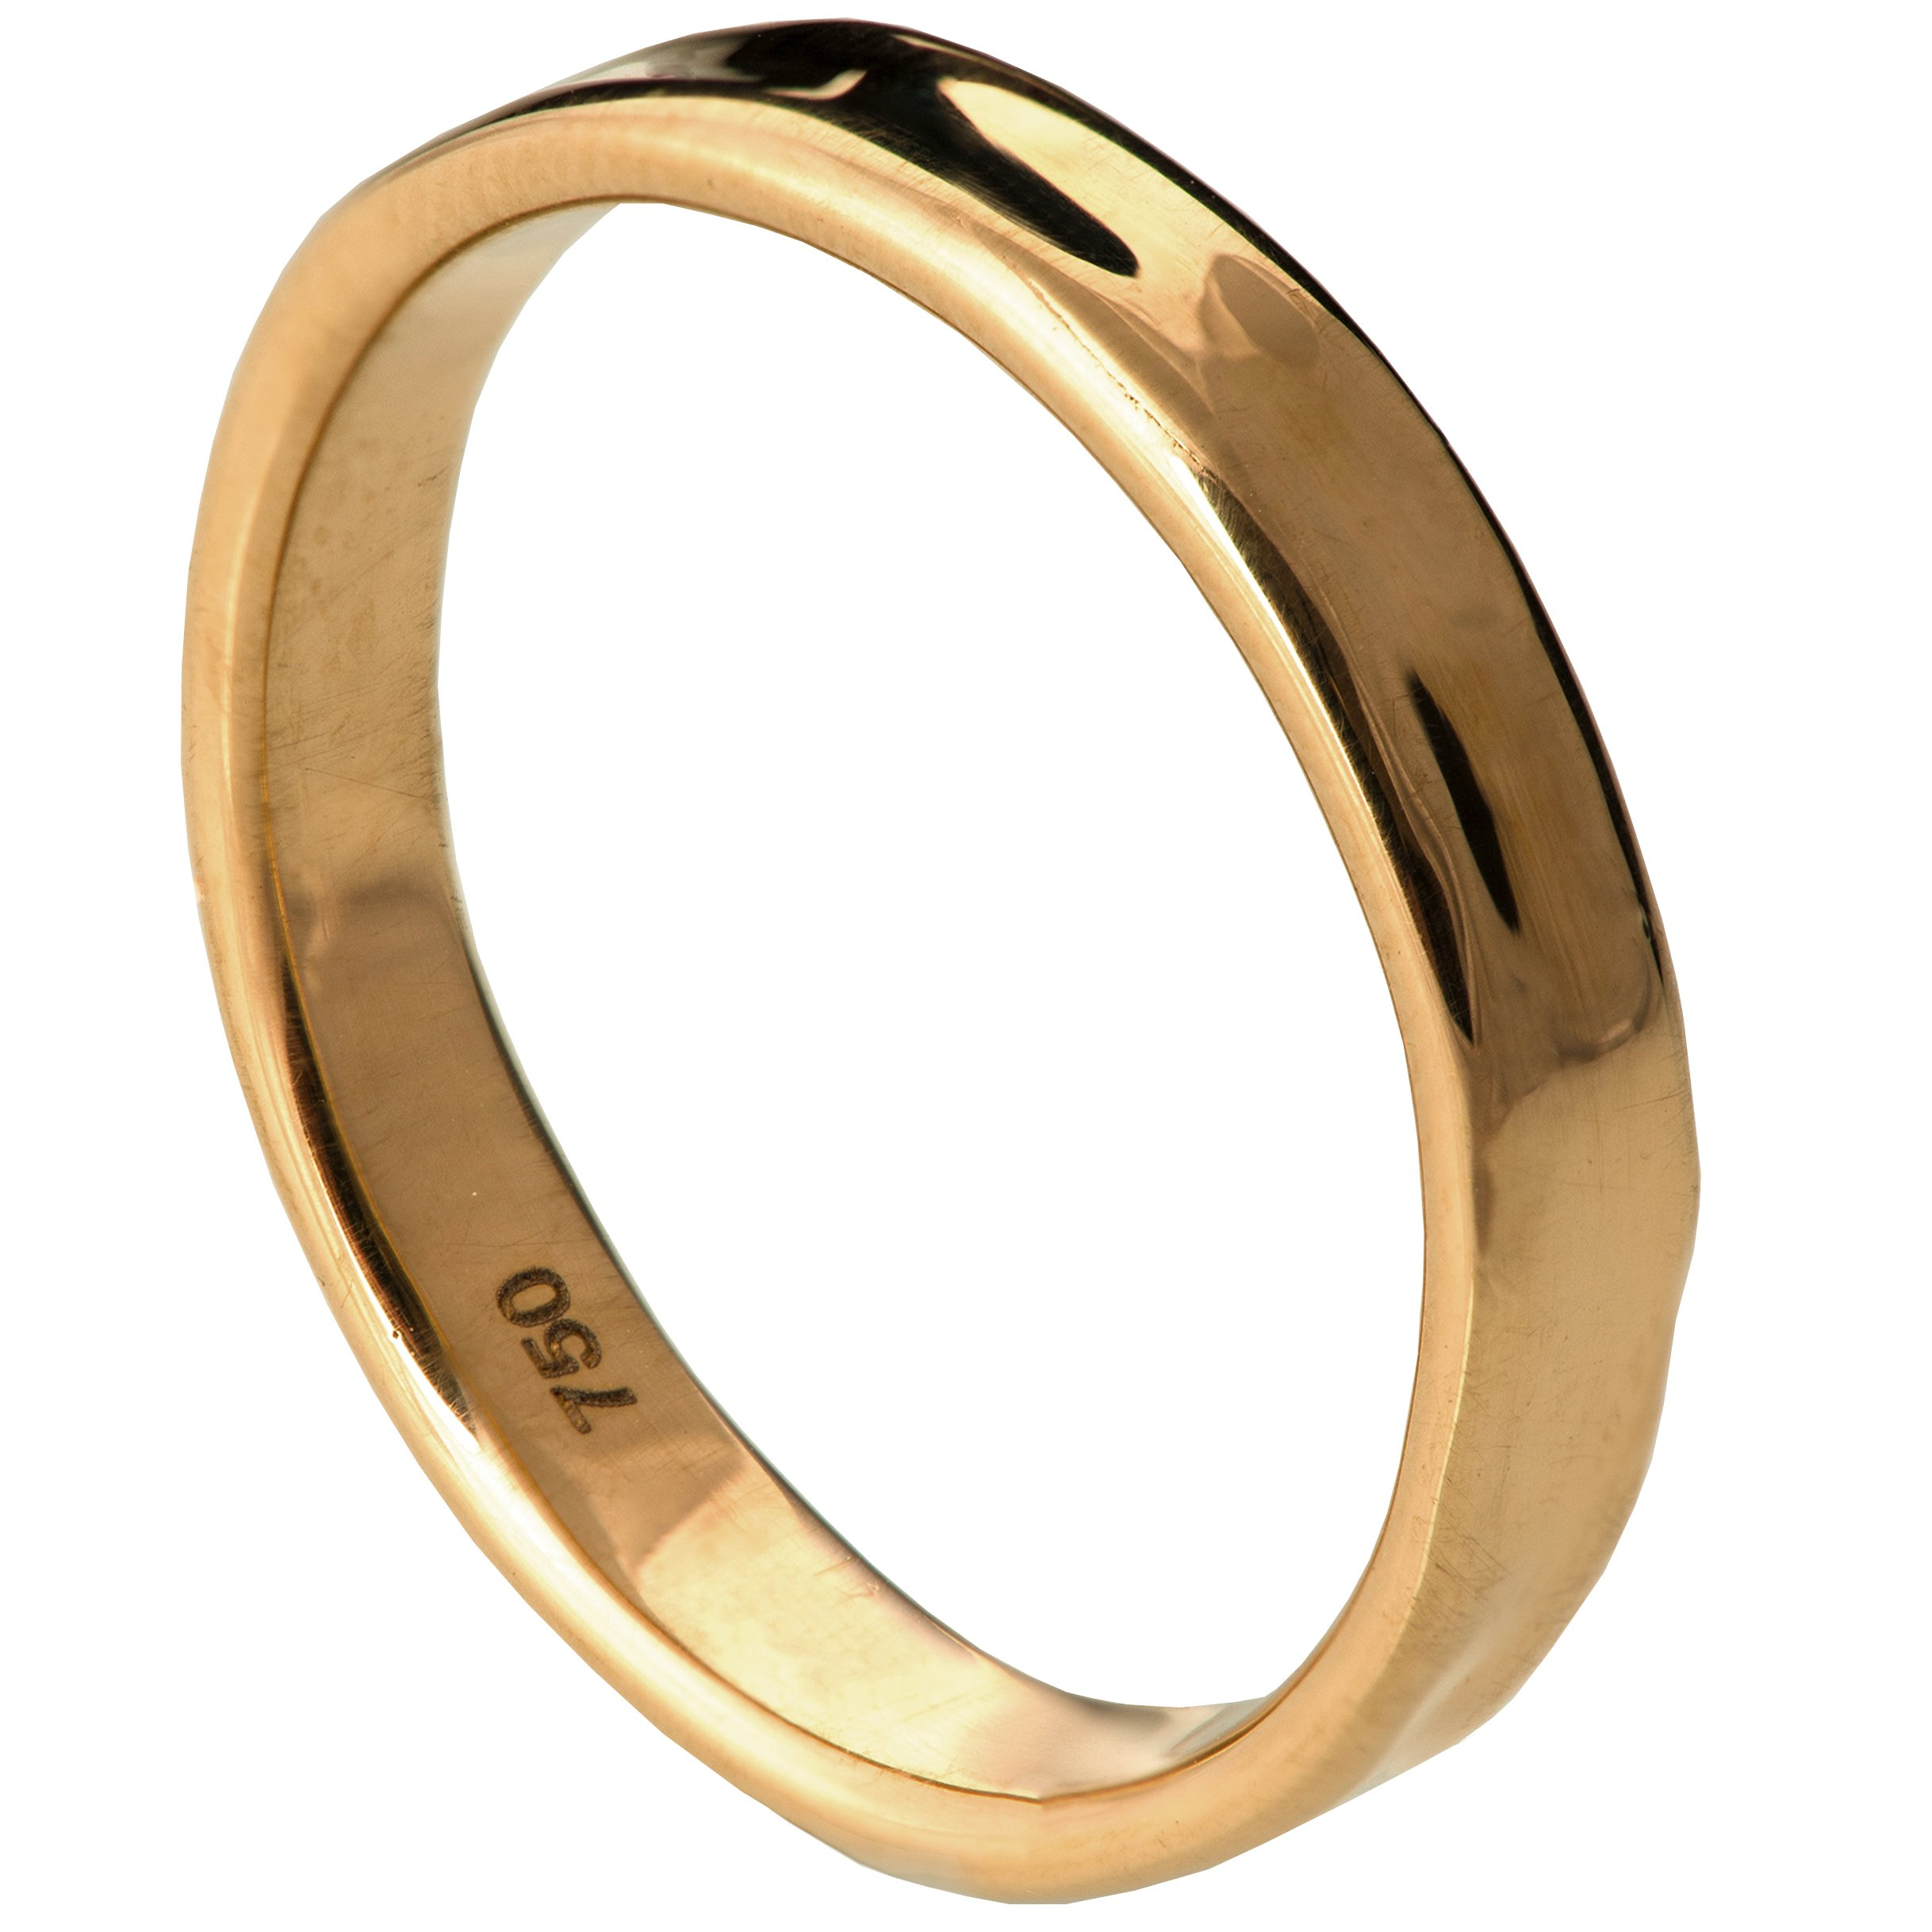 Solid 18K Rose Gold Textured Wedding Band Set His and Hers 3.8mm Wide Ring